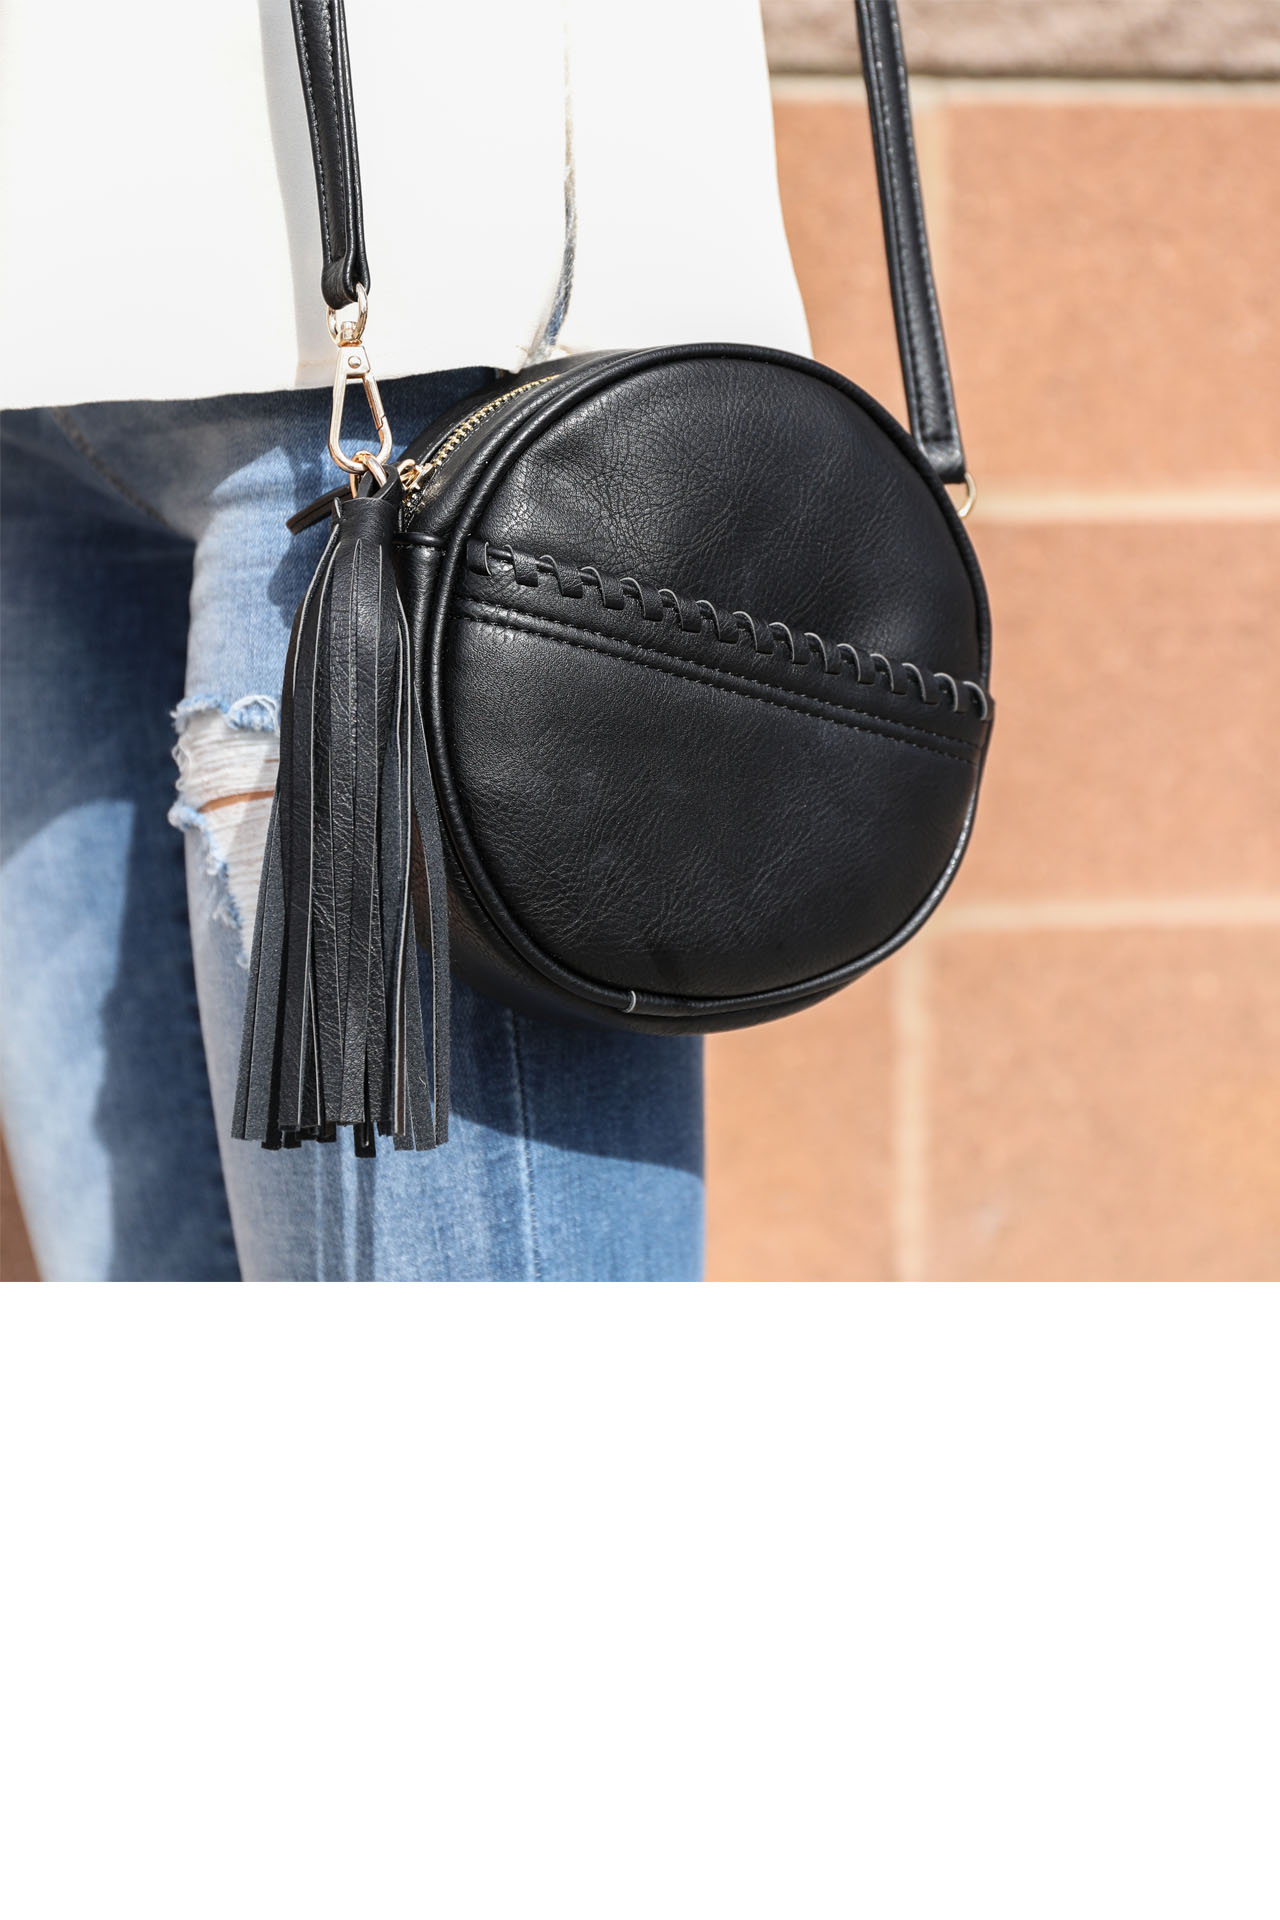 Black Faux Leather Round Cross Body Bag with Tassel Detail detail